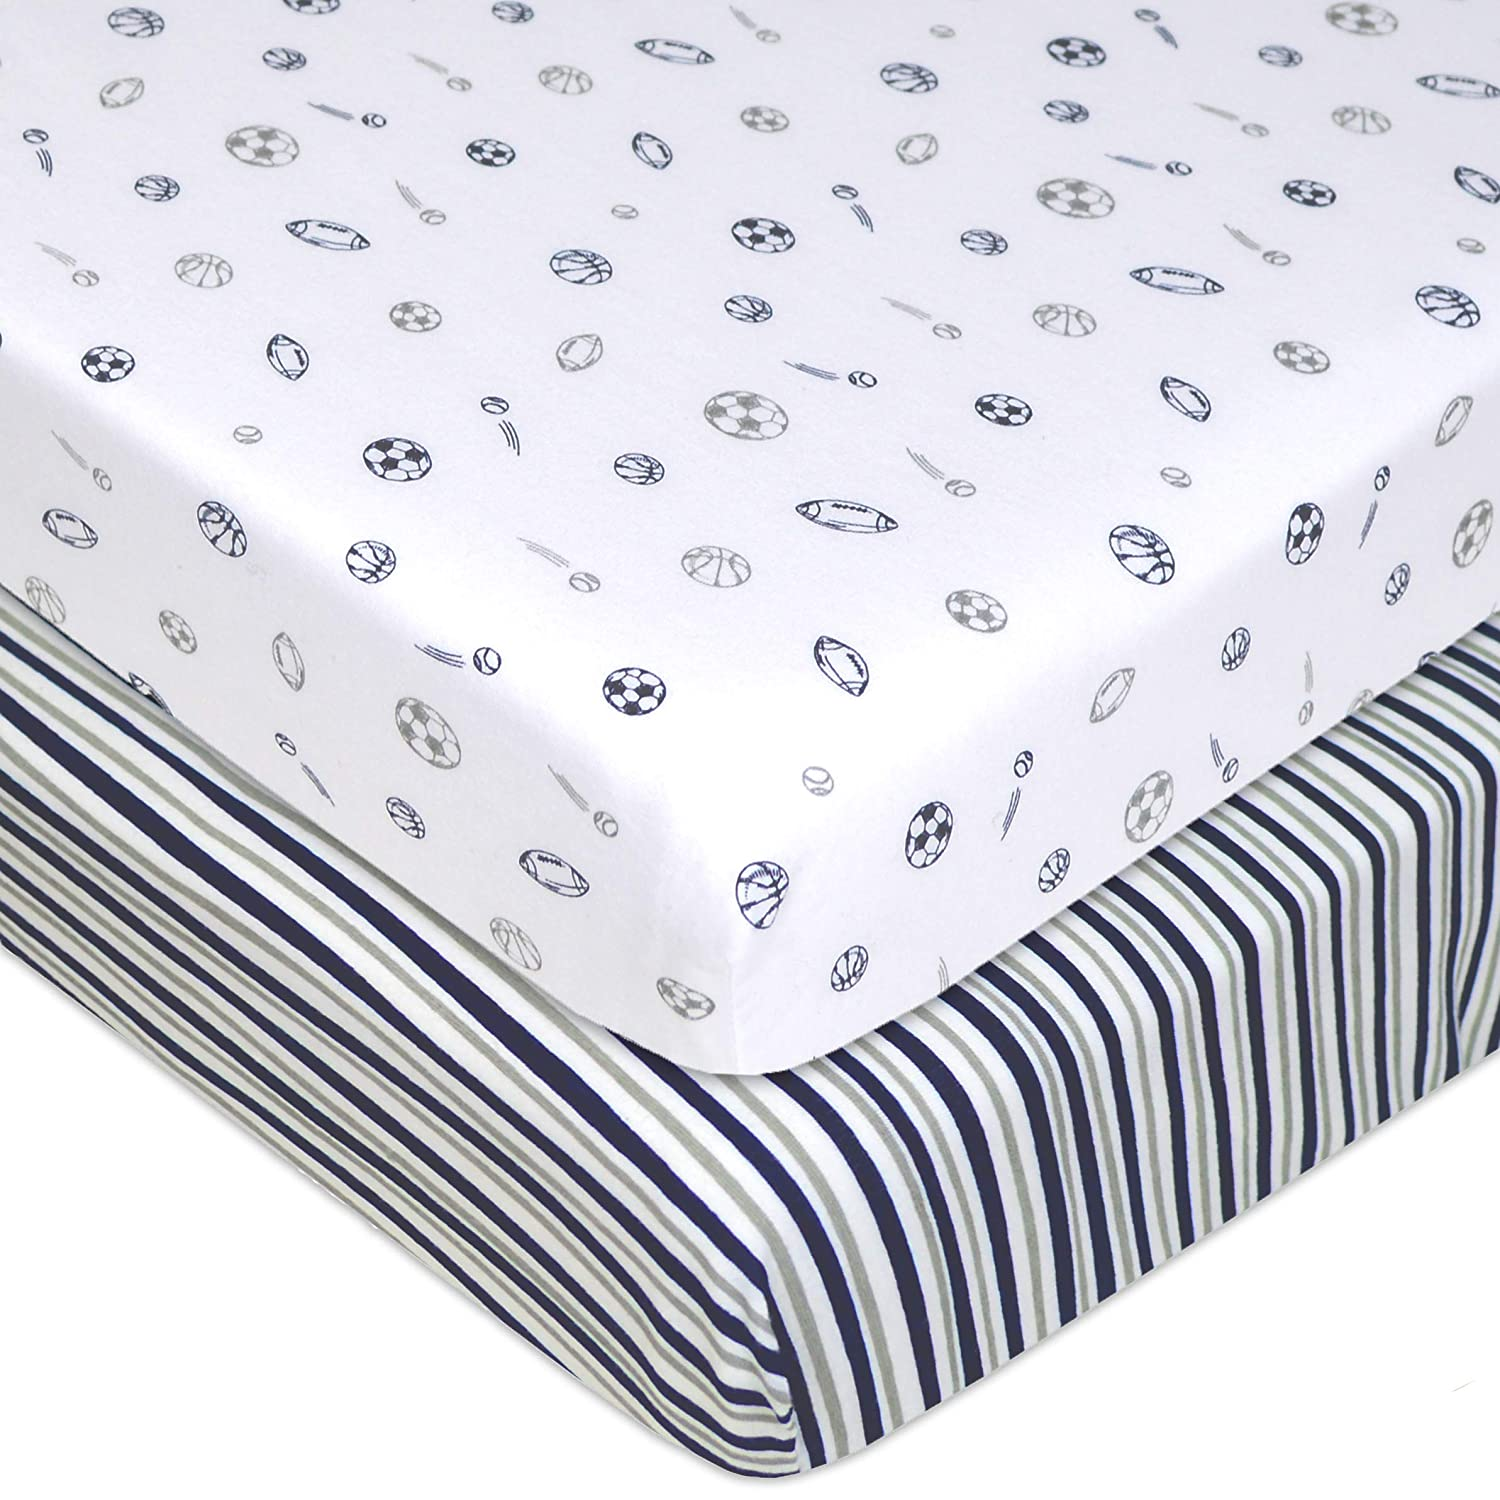 American Baby Company 100% Cotton Value Jersey Knit Fitted Portable/Mini-Crib Sheet, Ecru 3553-EC